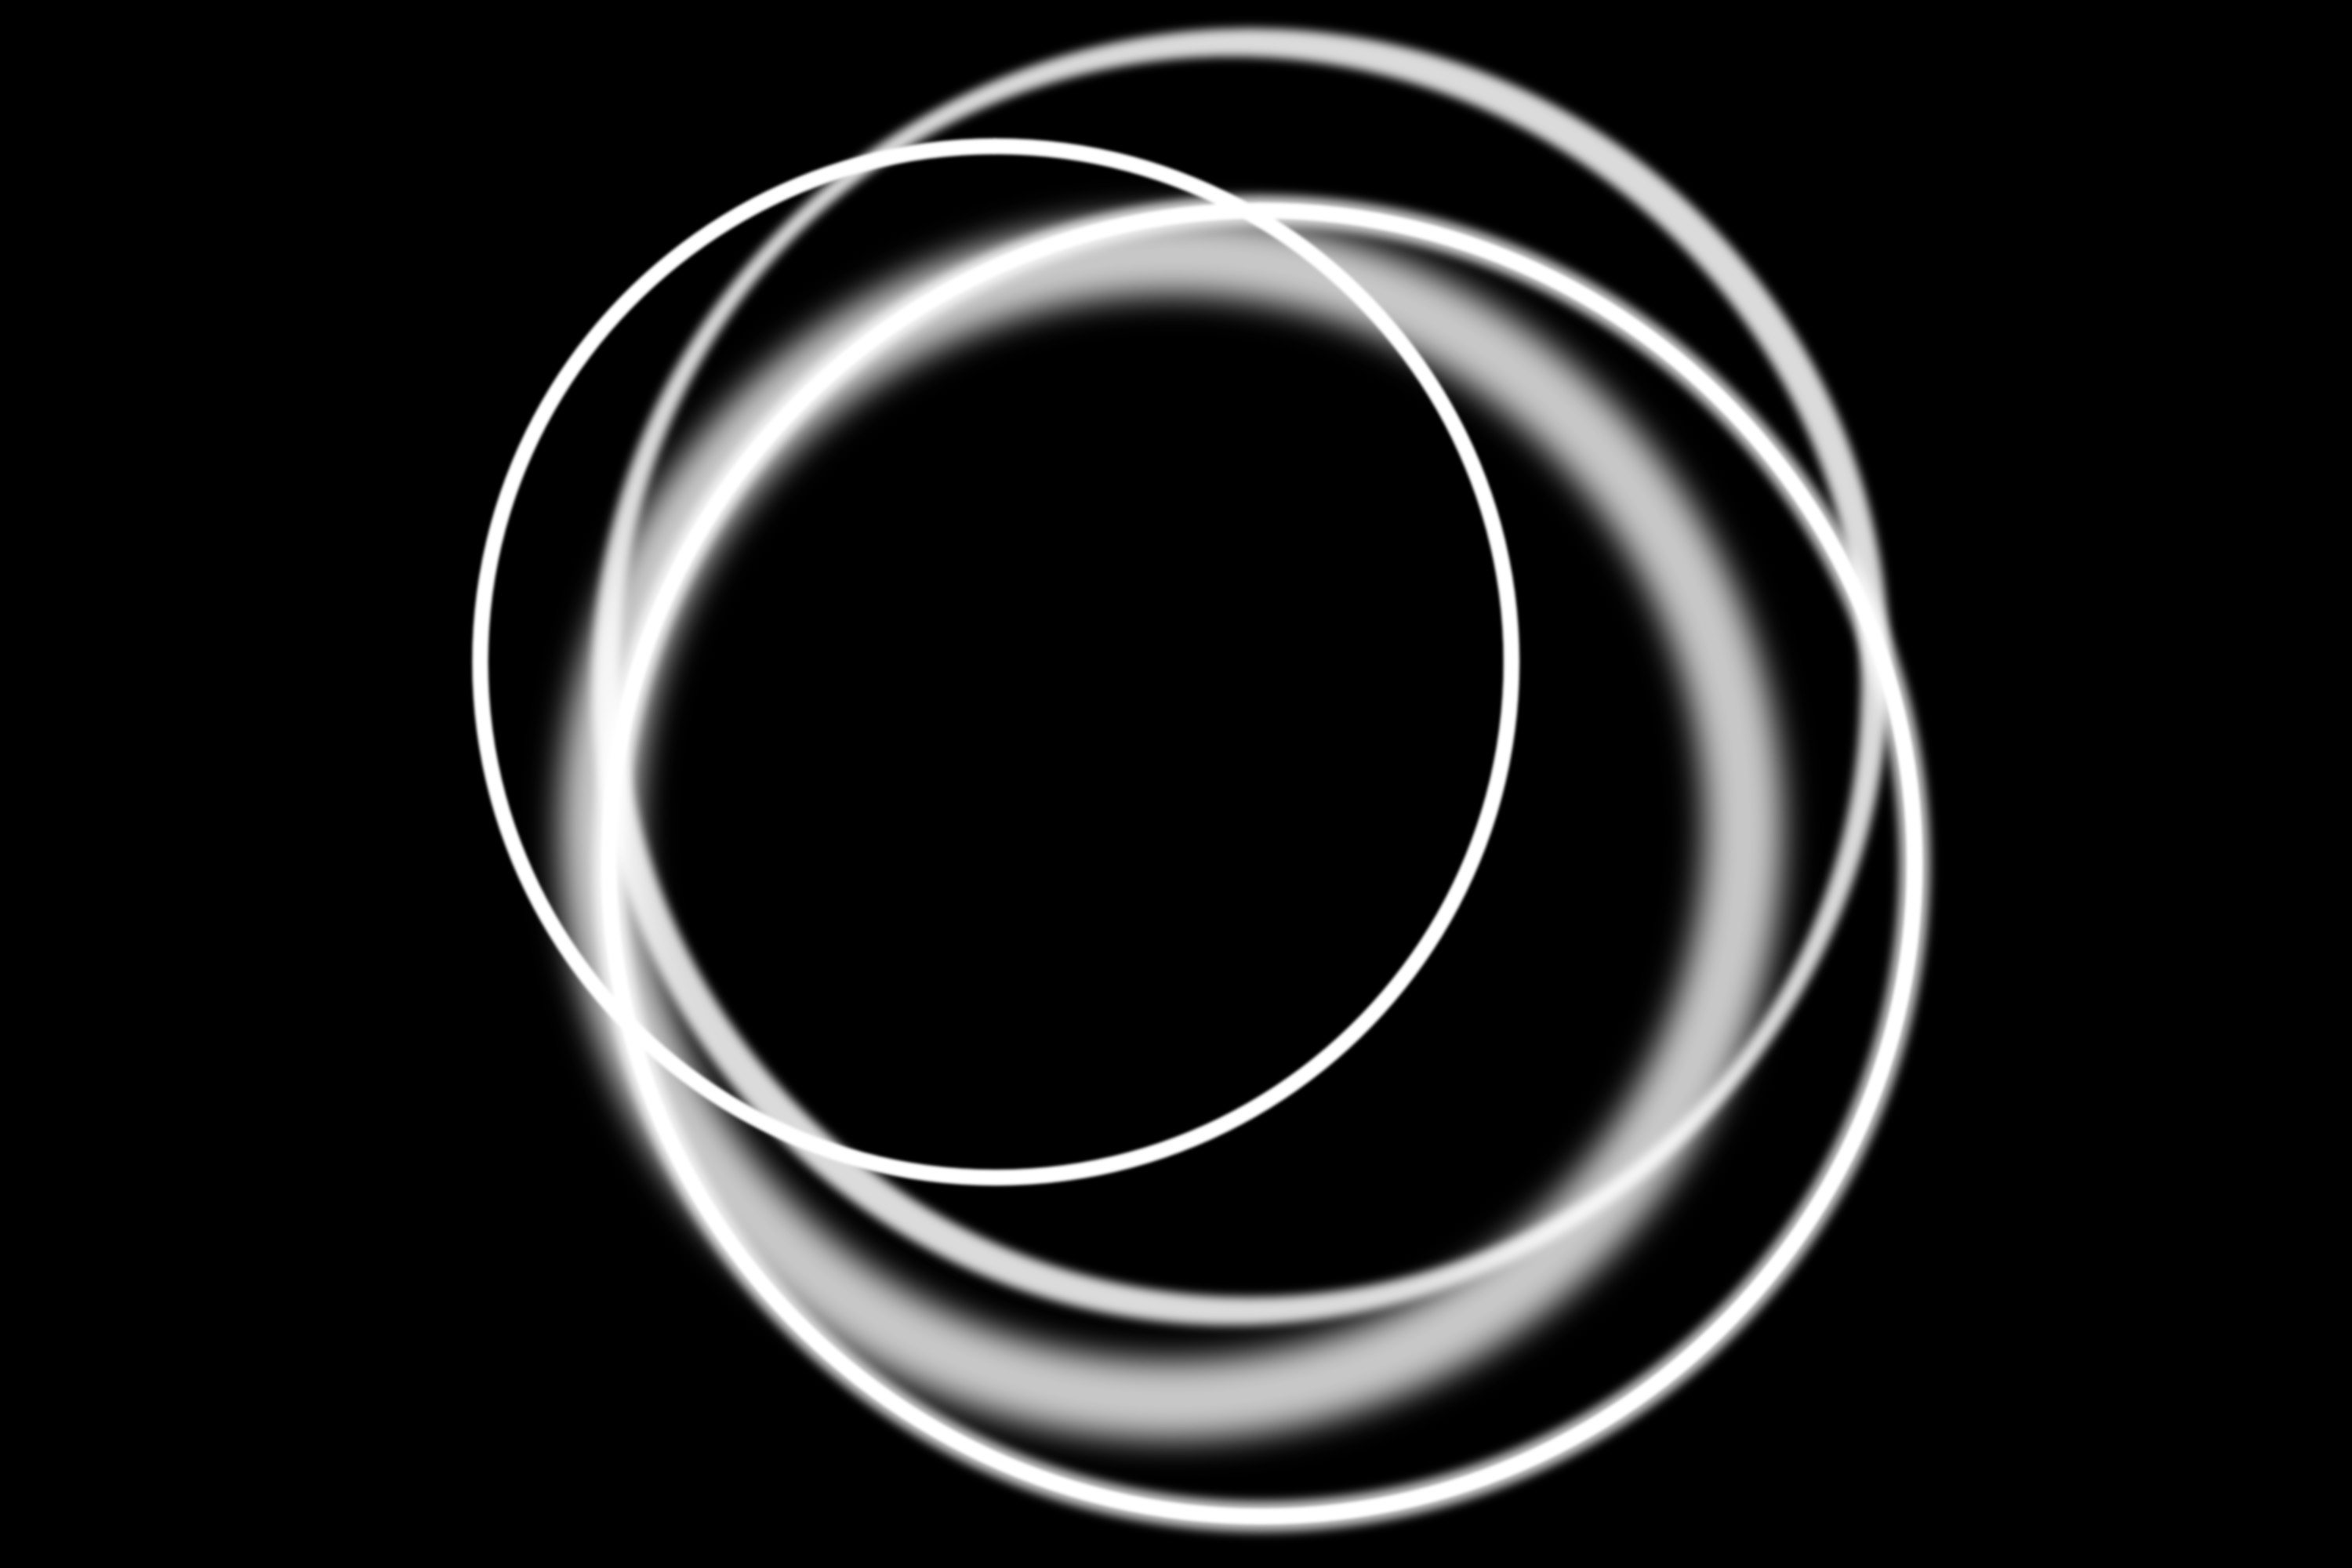 patterns of overlapping circles on black